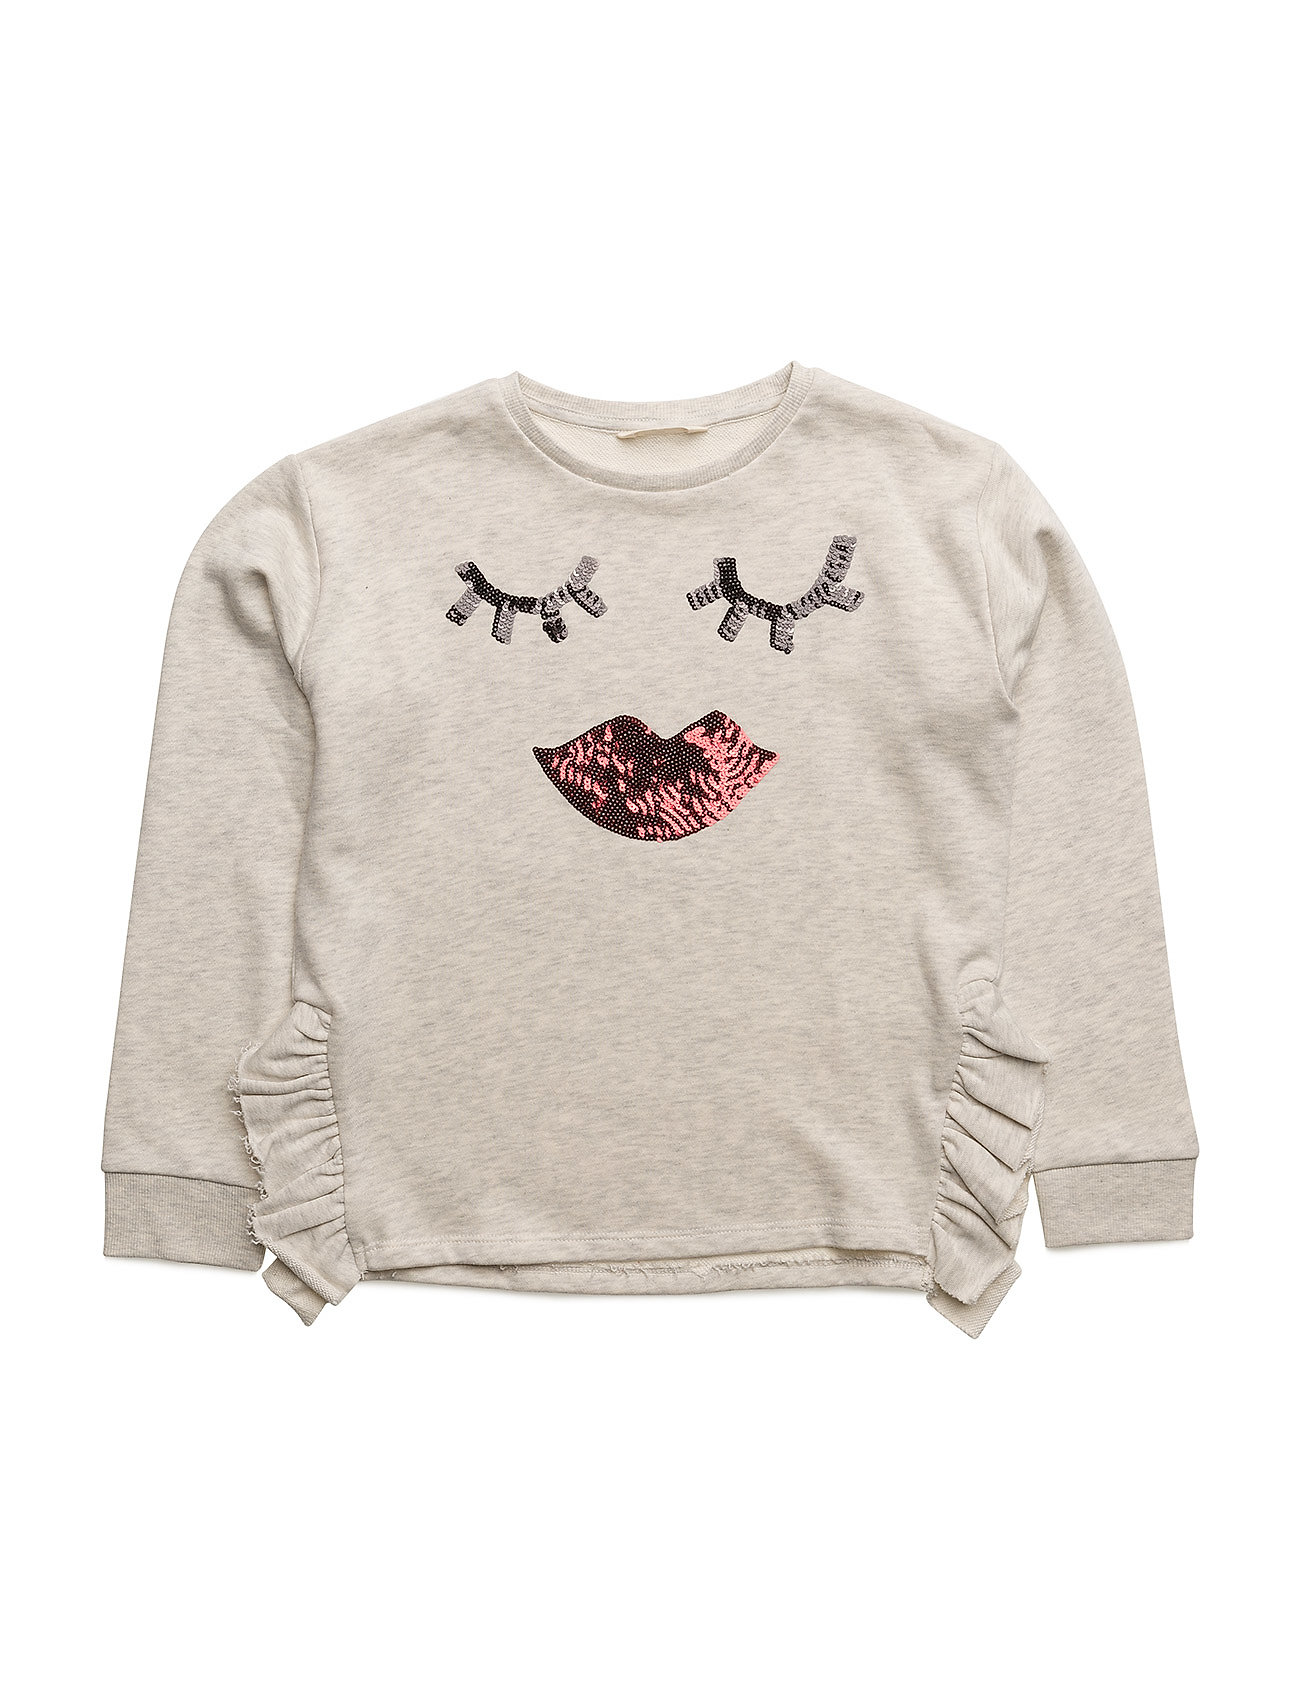 Sweatshirt Embroidered With Sequins thumbnail